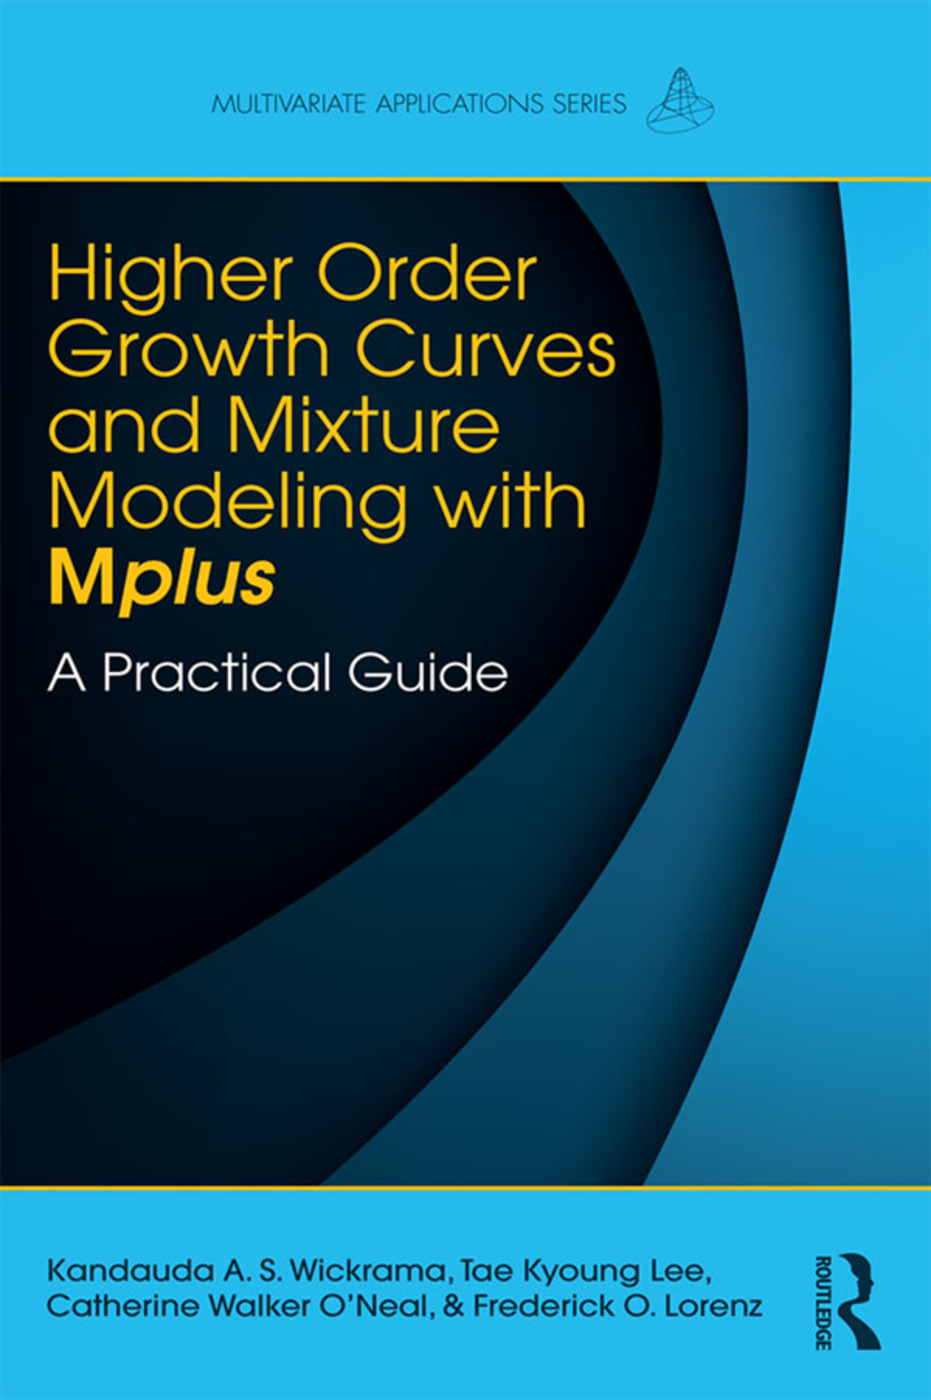 Higher-Order Growth Curves and Mixture Modeling with Mplus: A Practical Guide book cover